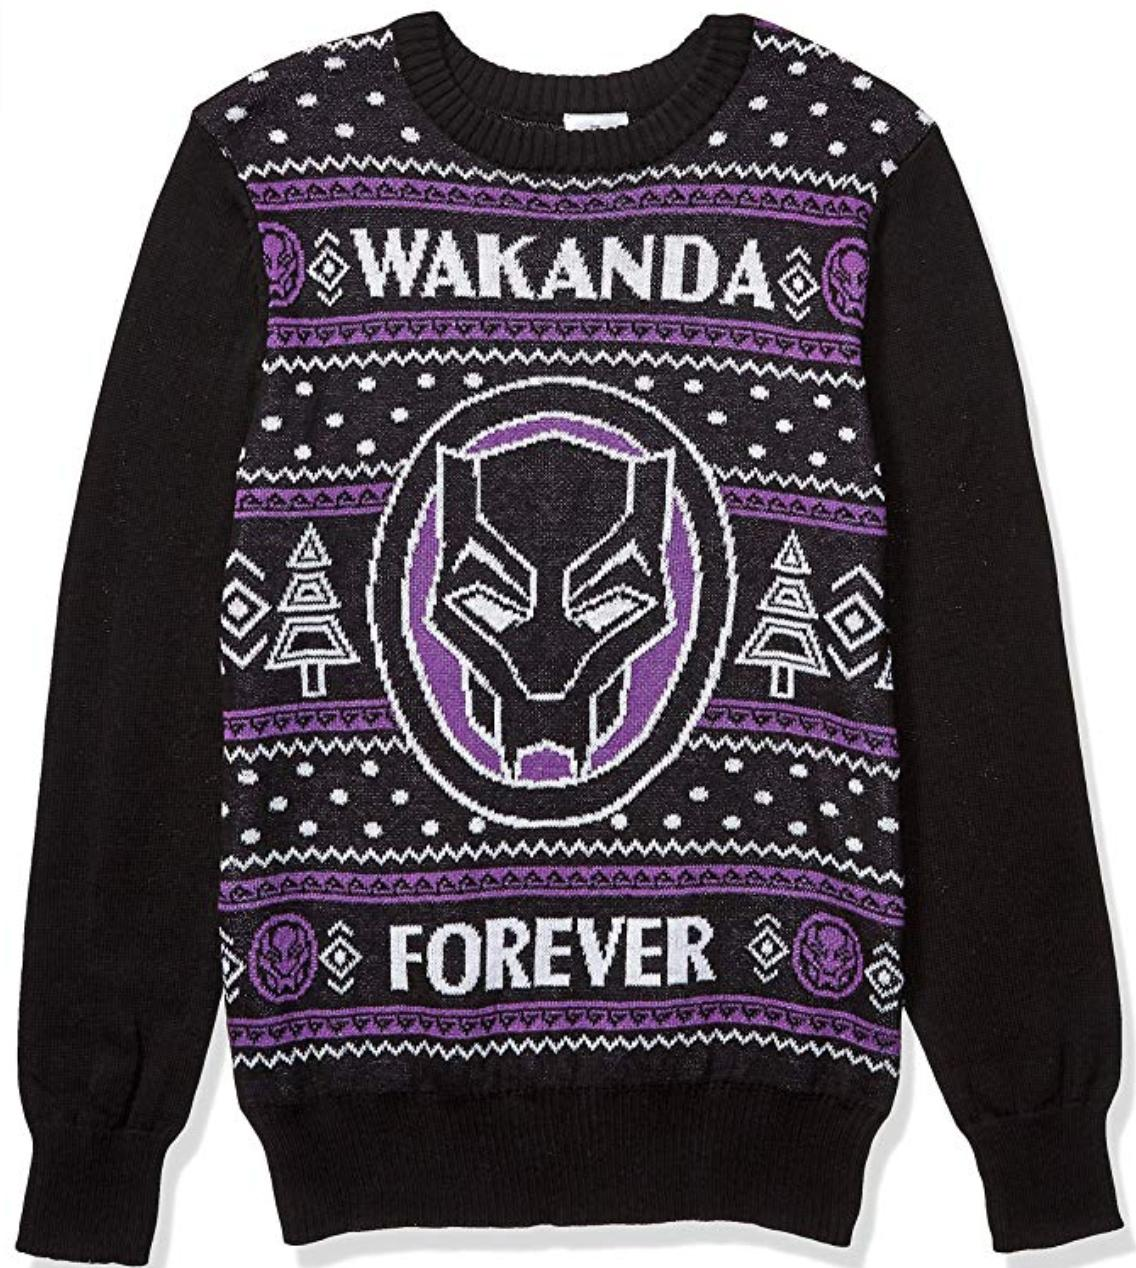 A purple and black ugly sweater featuring black panther.